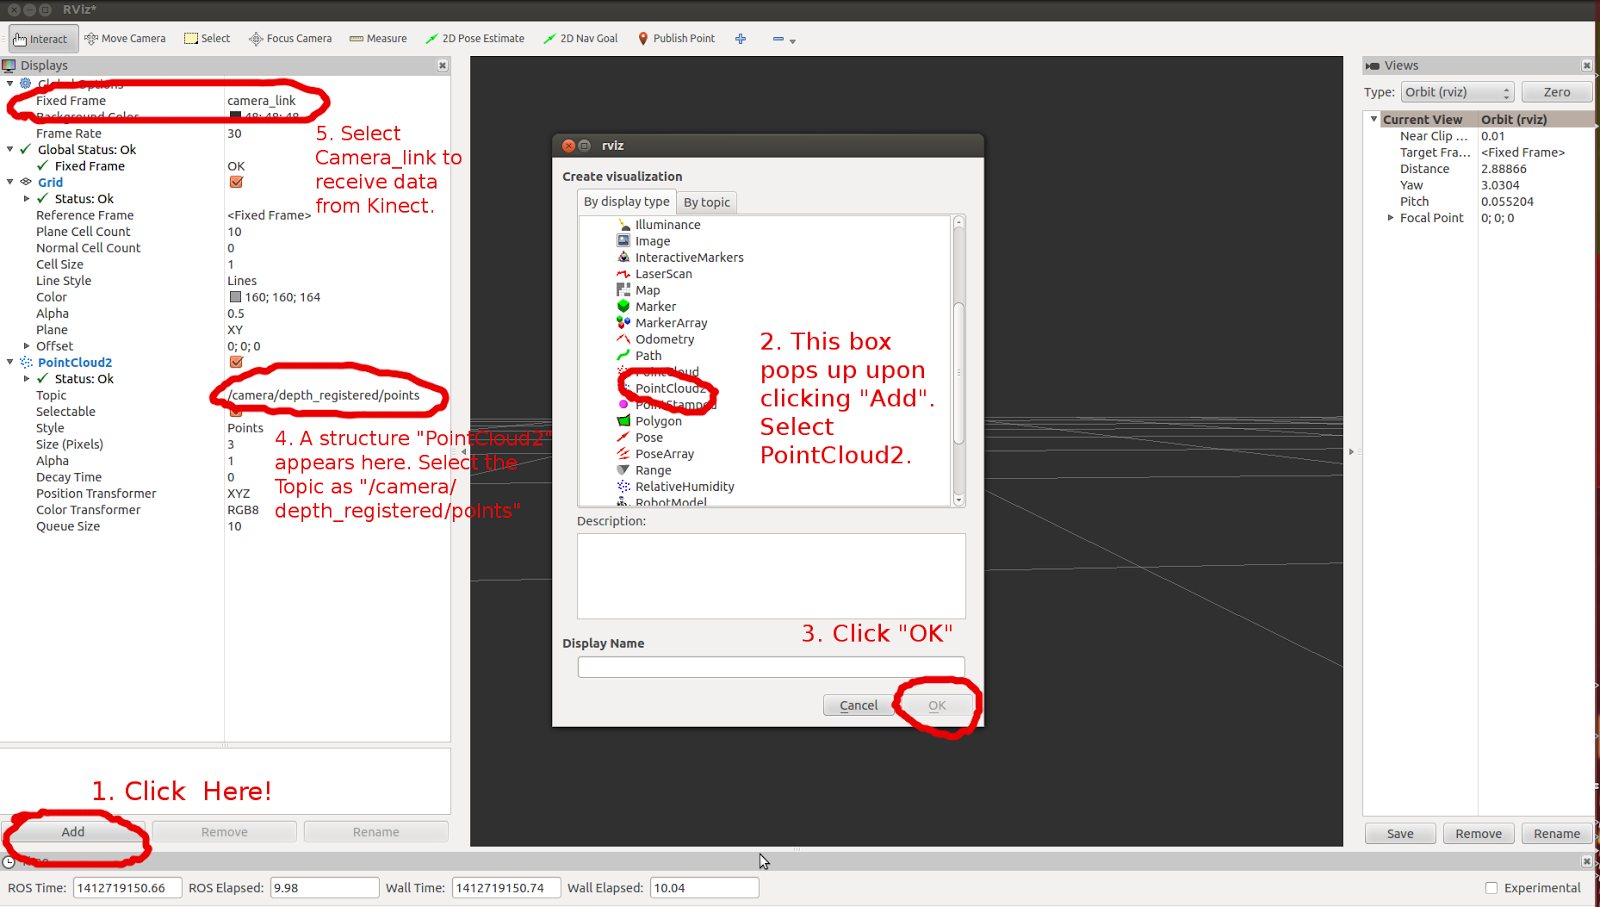 Swagatika@Work: Grab Pointclouds and save as pcd files using ROS and